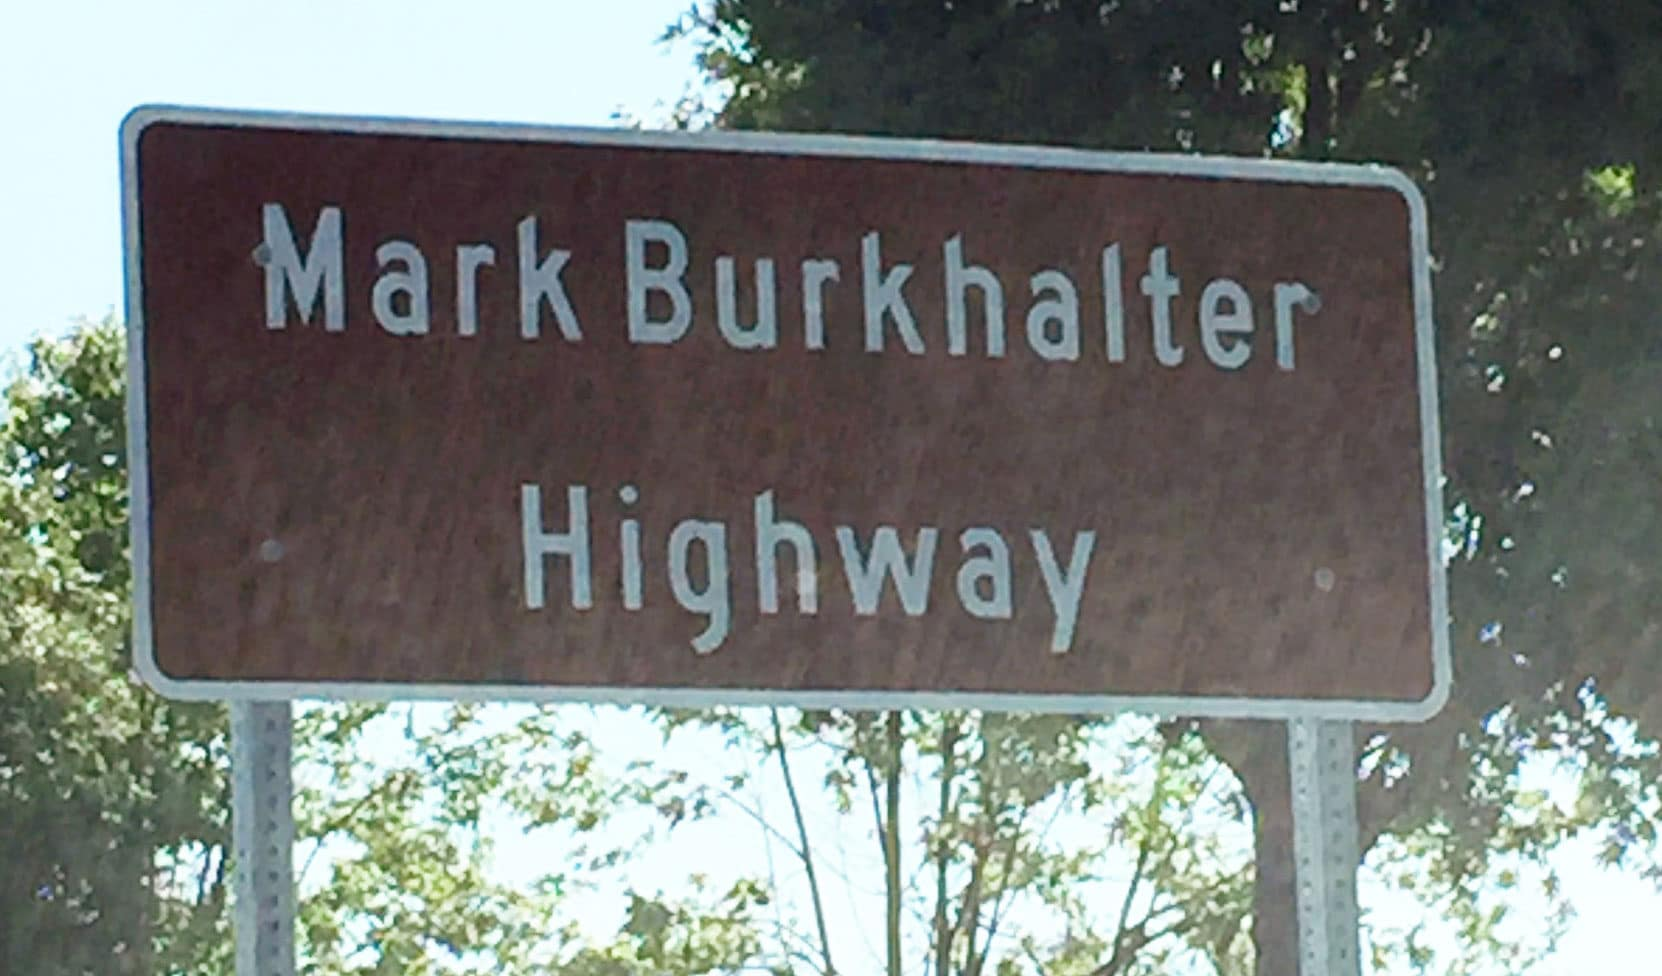 Mark burkhalter highway